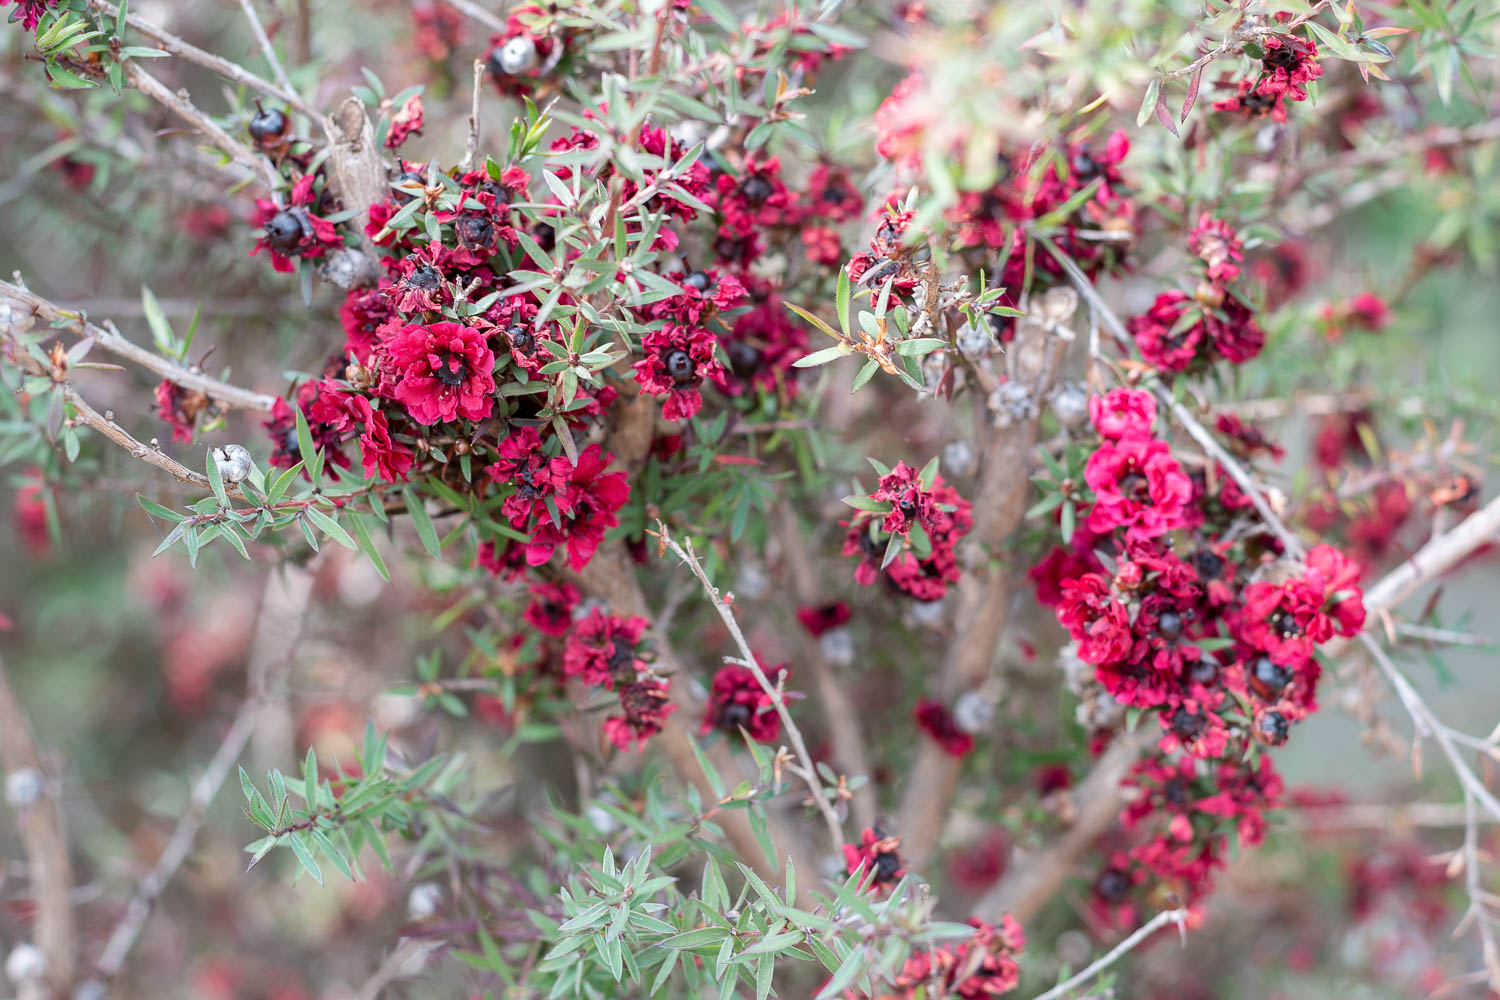 Ruby Glow Tea Tree - I normally gravitate to foliage that feels like I'm wandering the leafy woods in the Pacific Northwest, so I wanted to diversify textures with this tea tree. It has super pointy leaves and deep ruby colored tiny flowers. When it first blooms, the whole shrub is all bright red, but by the end of summer it's more of a brown-burgundy. I dig it.